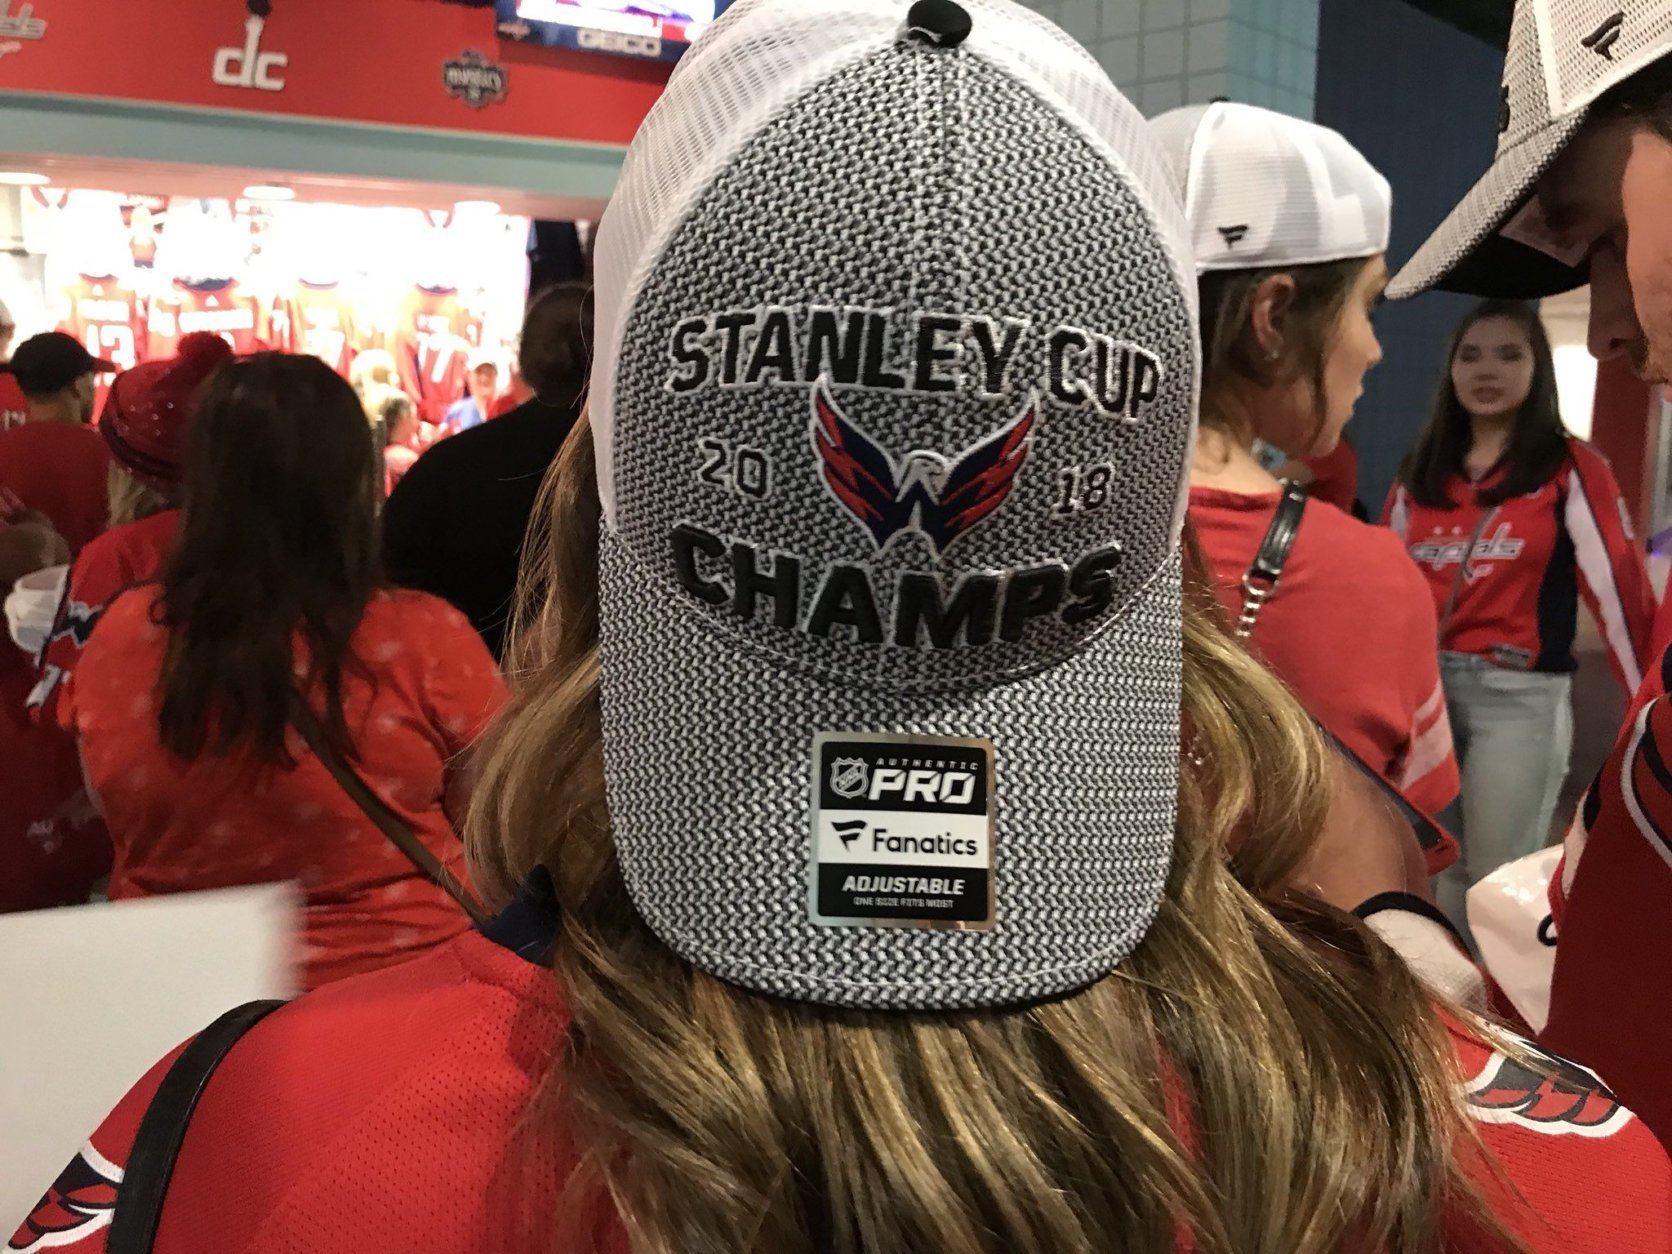 Stanley Cup champs gear already spotted on a Caps fan on Thursday, June 7, 2018. (WTOP/Michelle Basch)